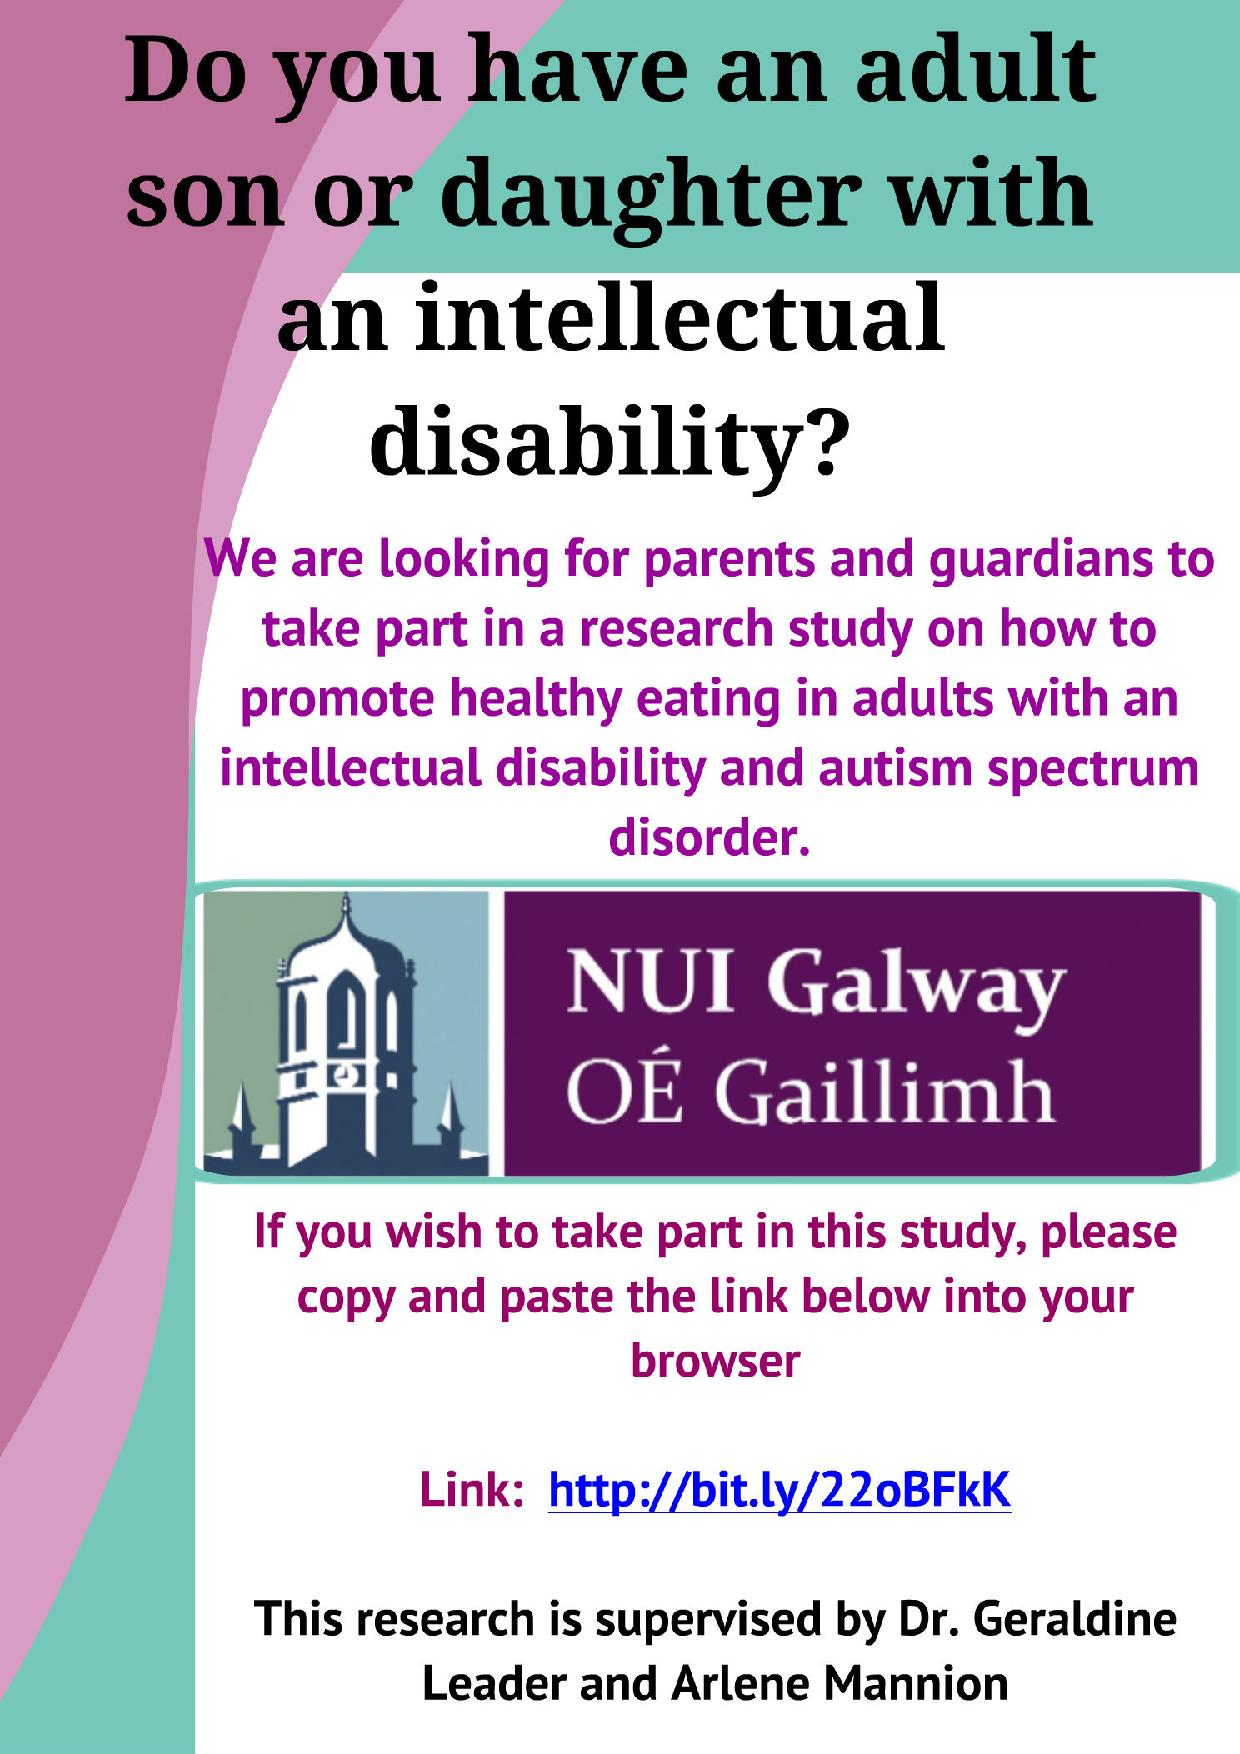 Autism With Intellectual Disability >> Do You Have An Adult Son Or Daughter With An Intellectual Disability